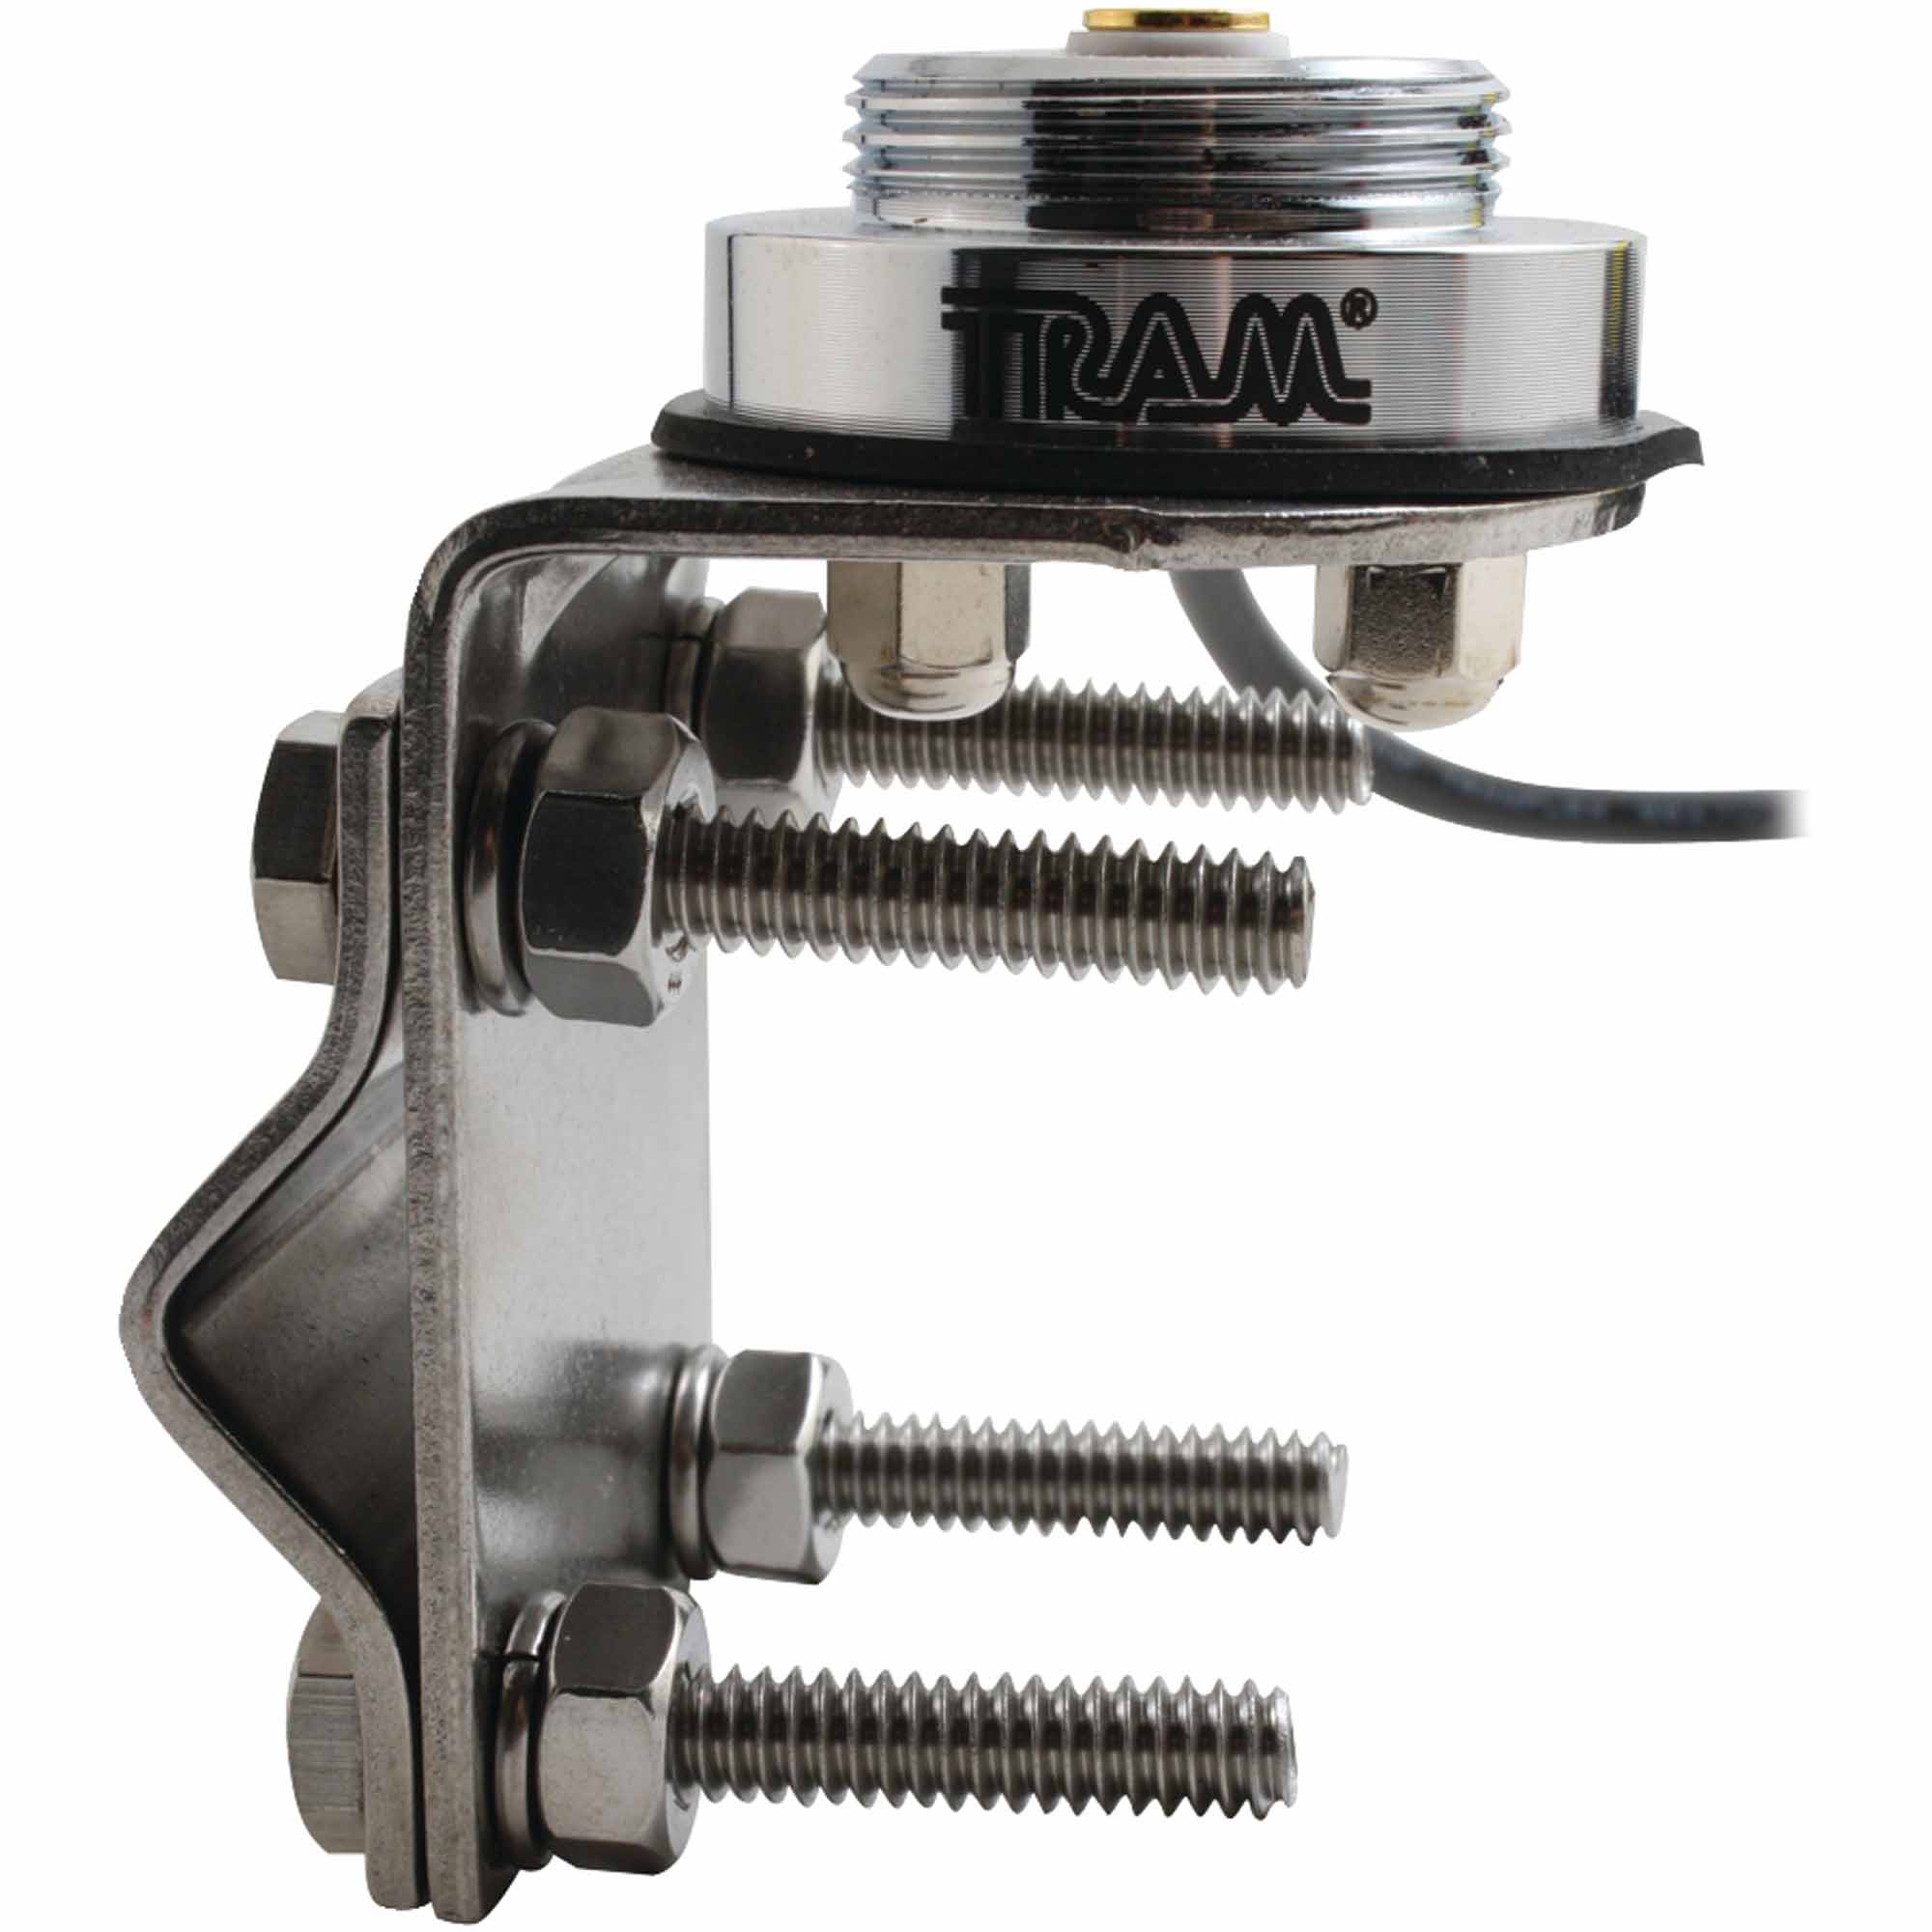 Tram 1249 NMO Mirror Mount Kit with 17' Coaxial Cable